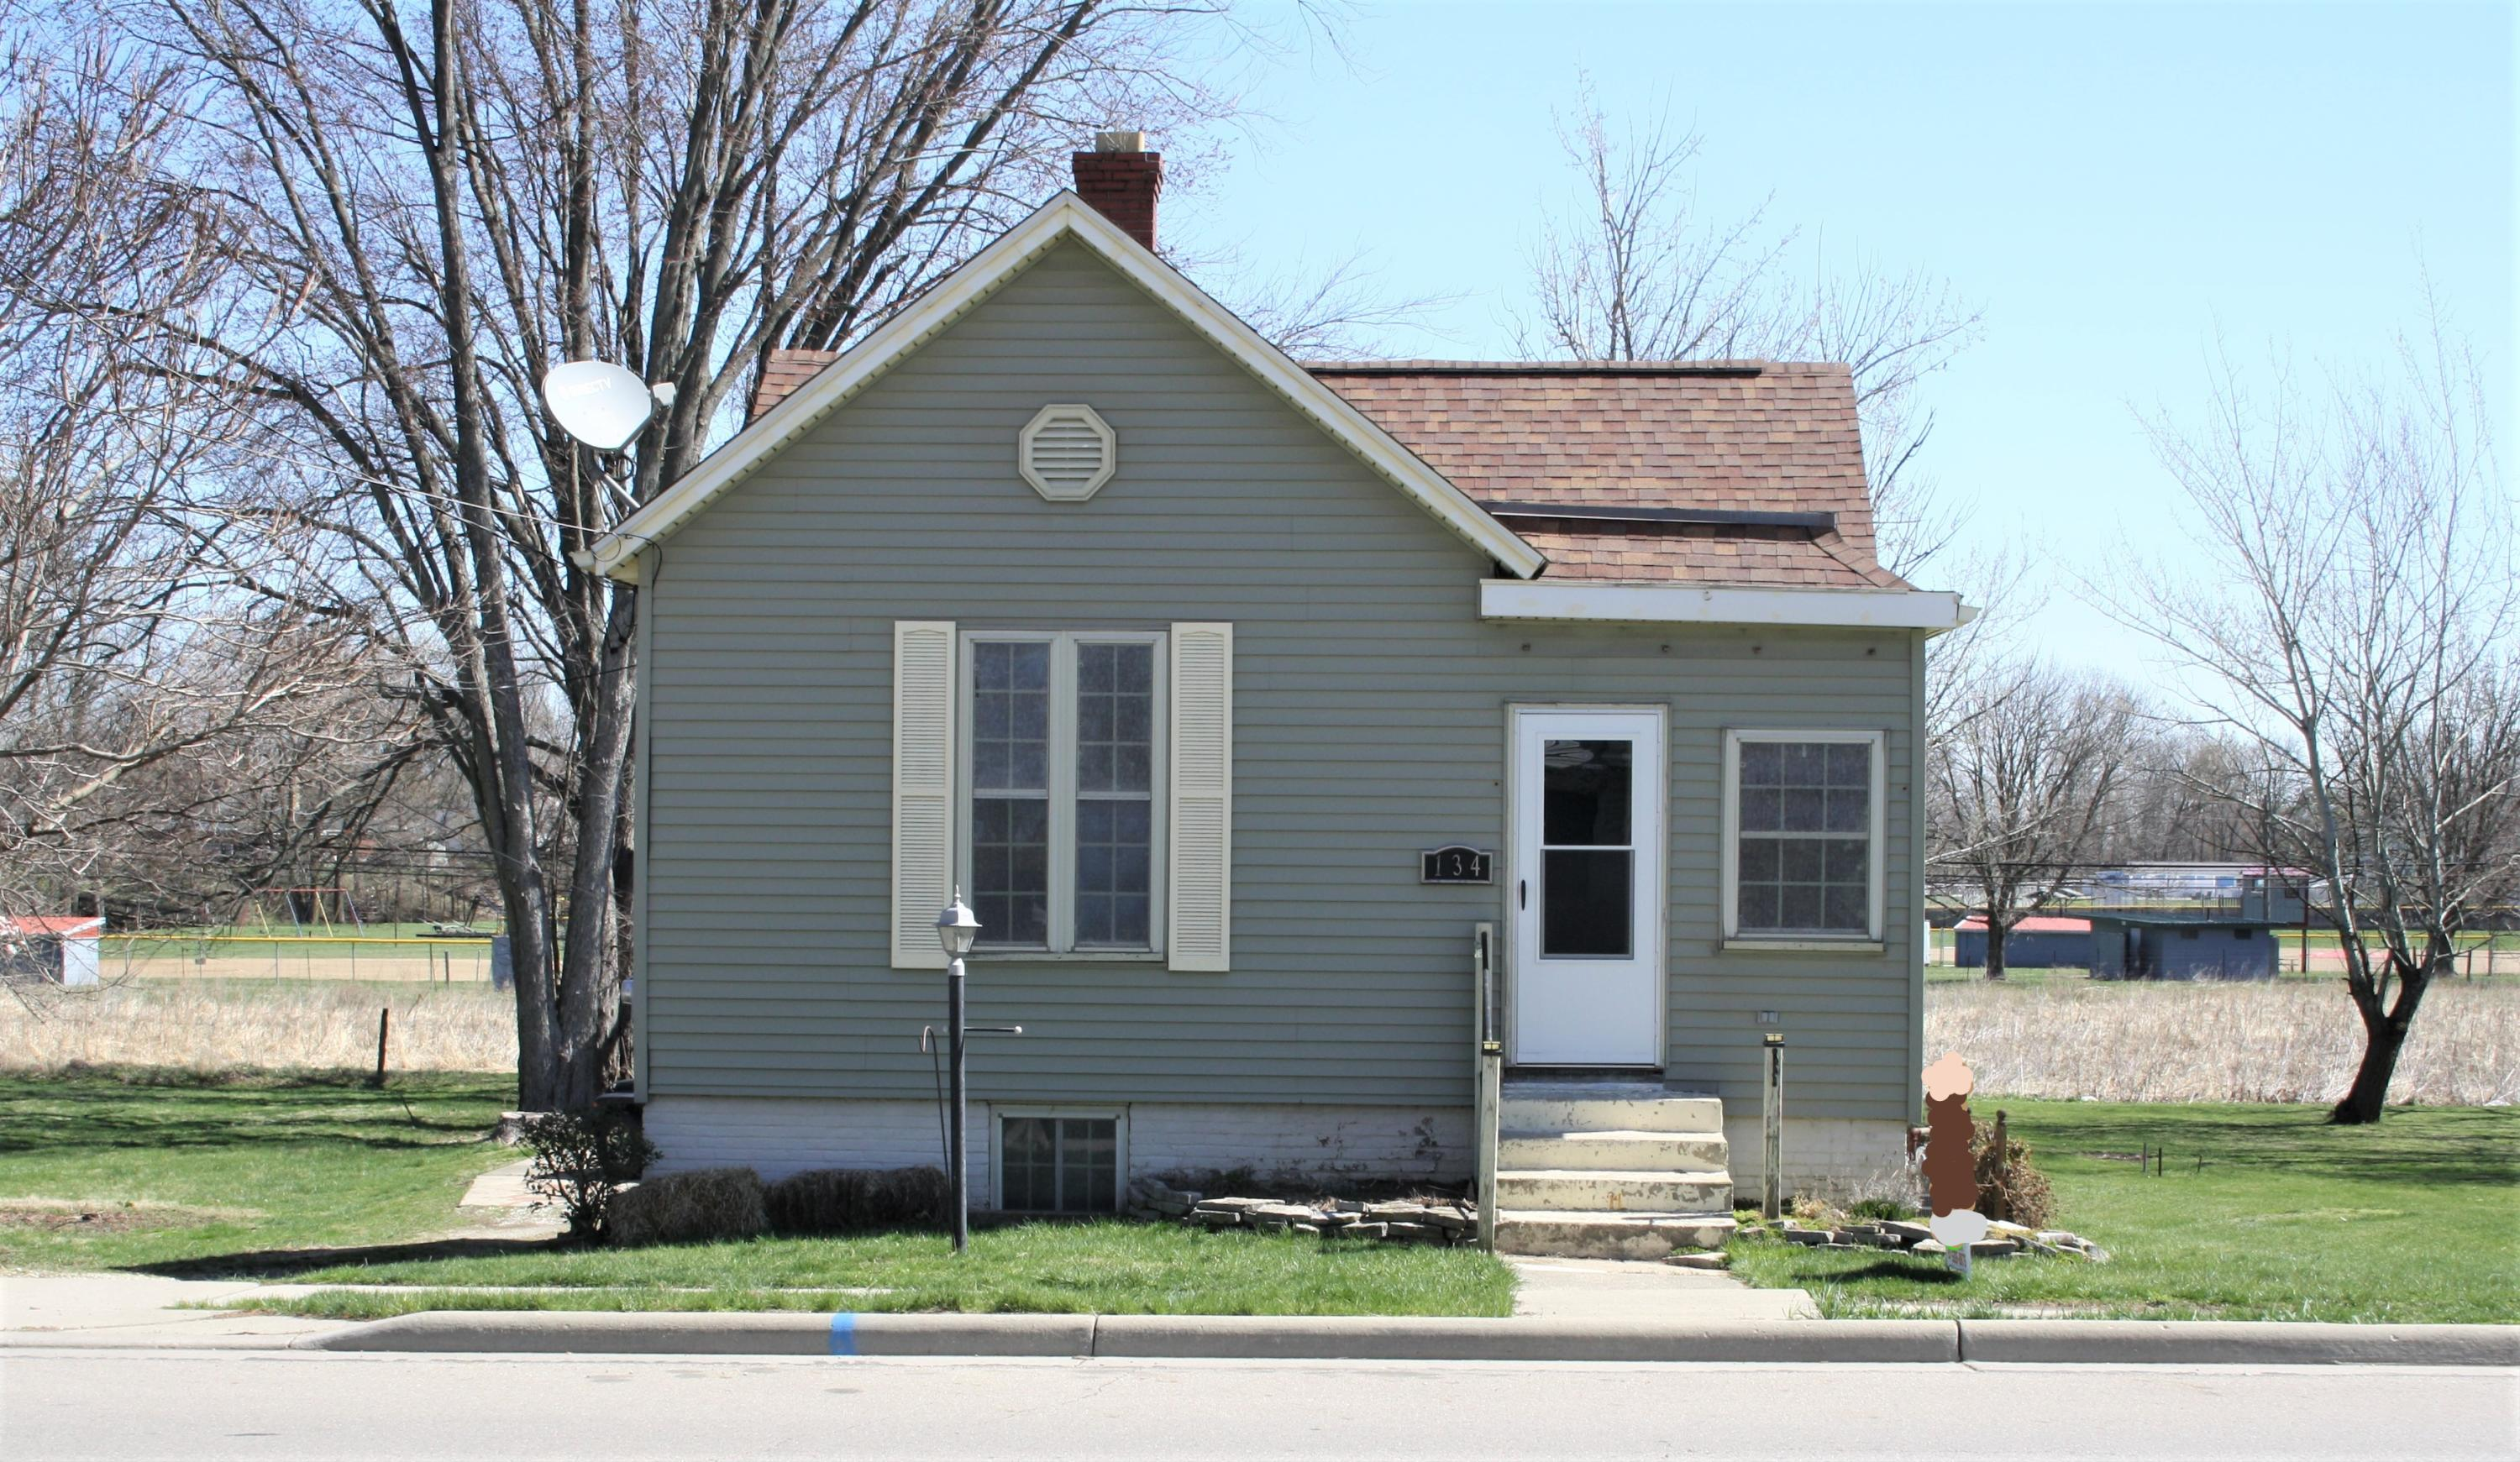 134 N Chillicothe Street Property Photo - South Charleston, OH real estate listing